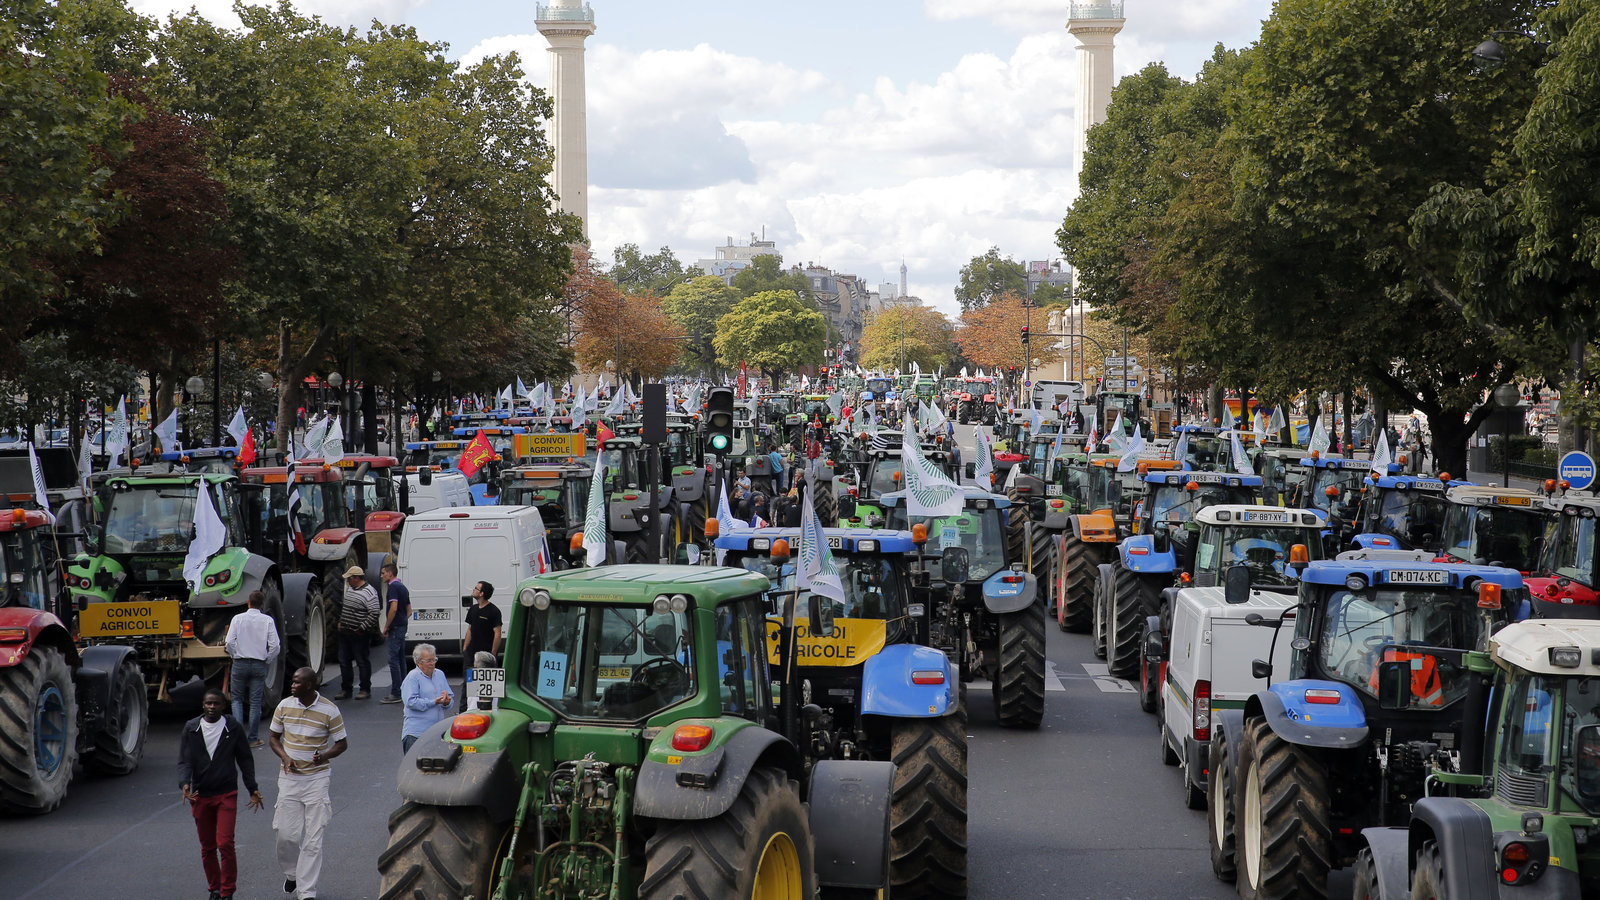 Farmers Stage Massive Tractor Protest In Paris